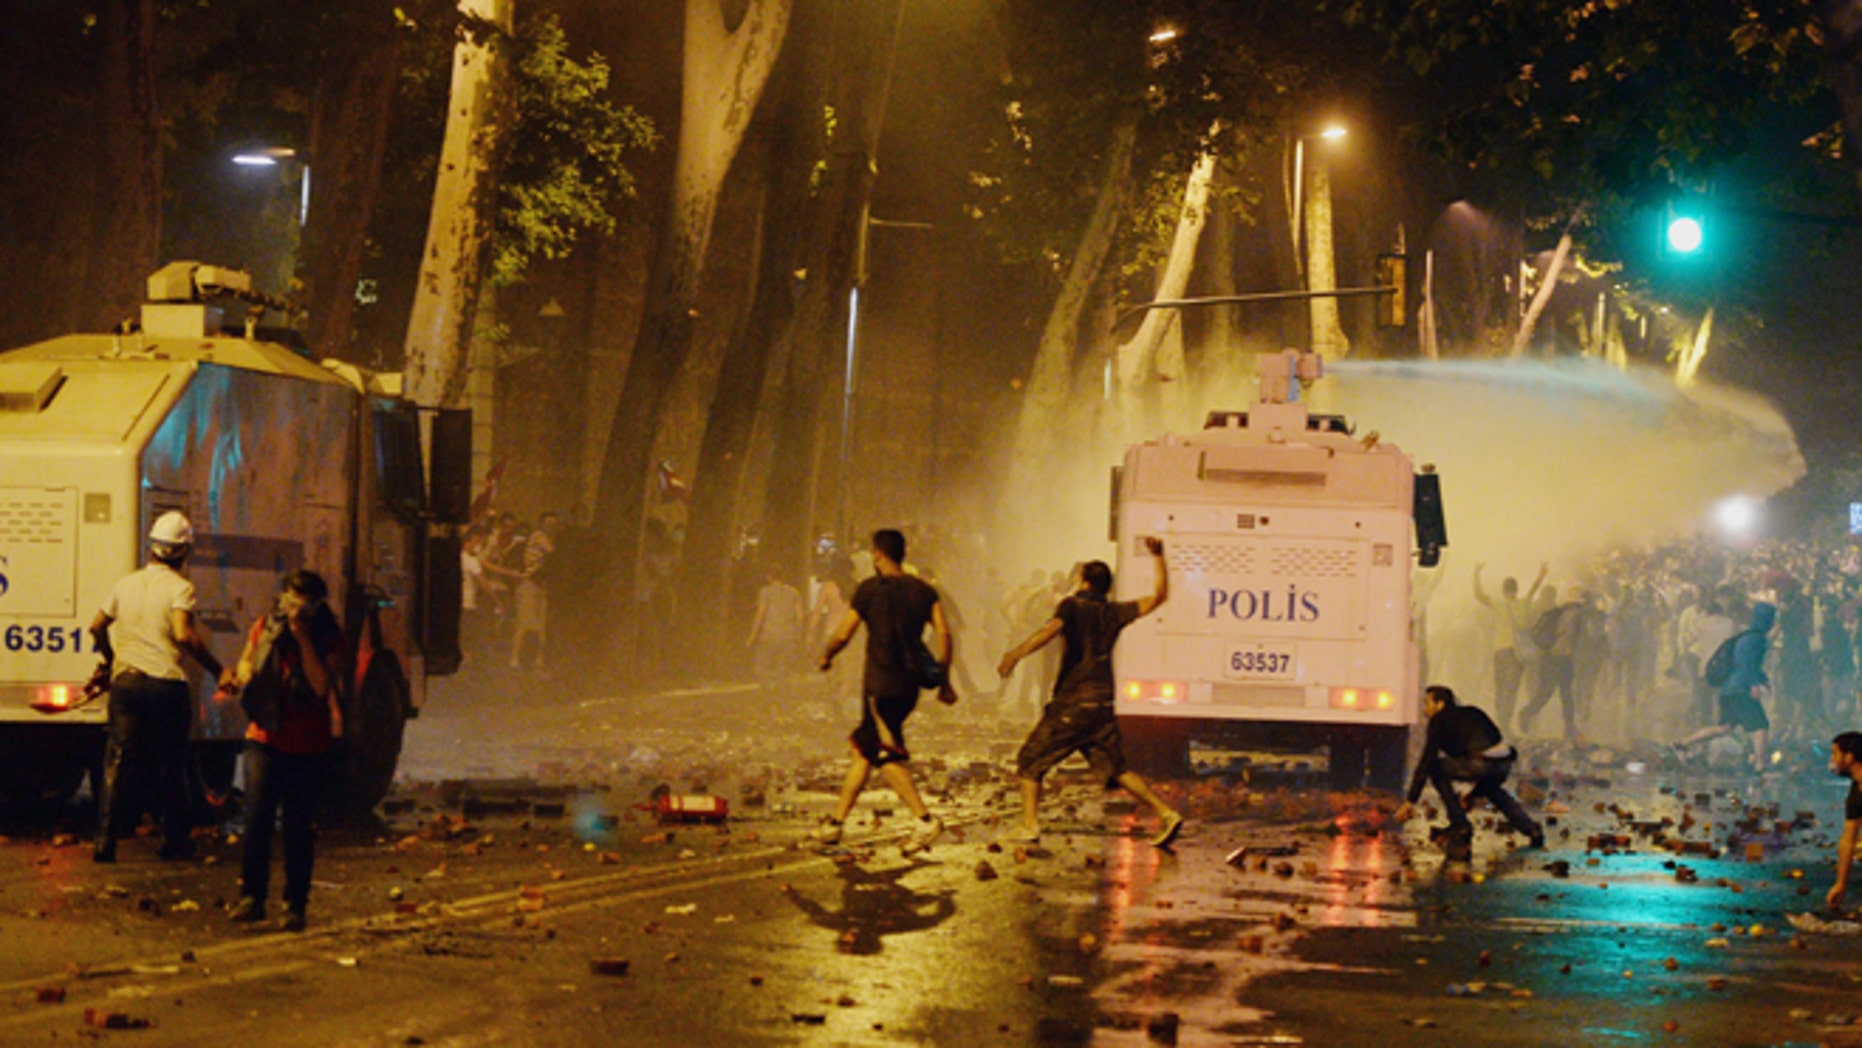 June 1, 2013 - Turkish protesters clash with riot police near the former Ottoman palace, Dolmabahce, where Turkey's Prime Minister Recep Tayyip Erdogan maintains an office in Istanbul, Turkey.